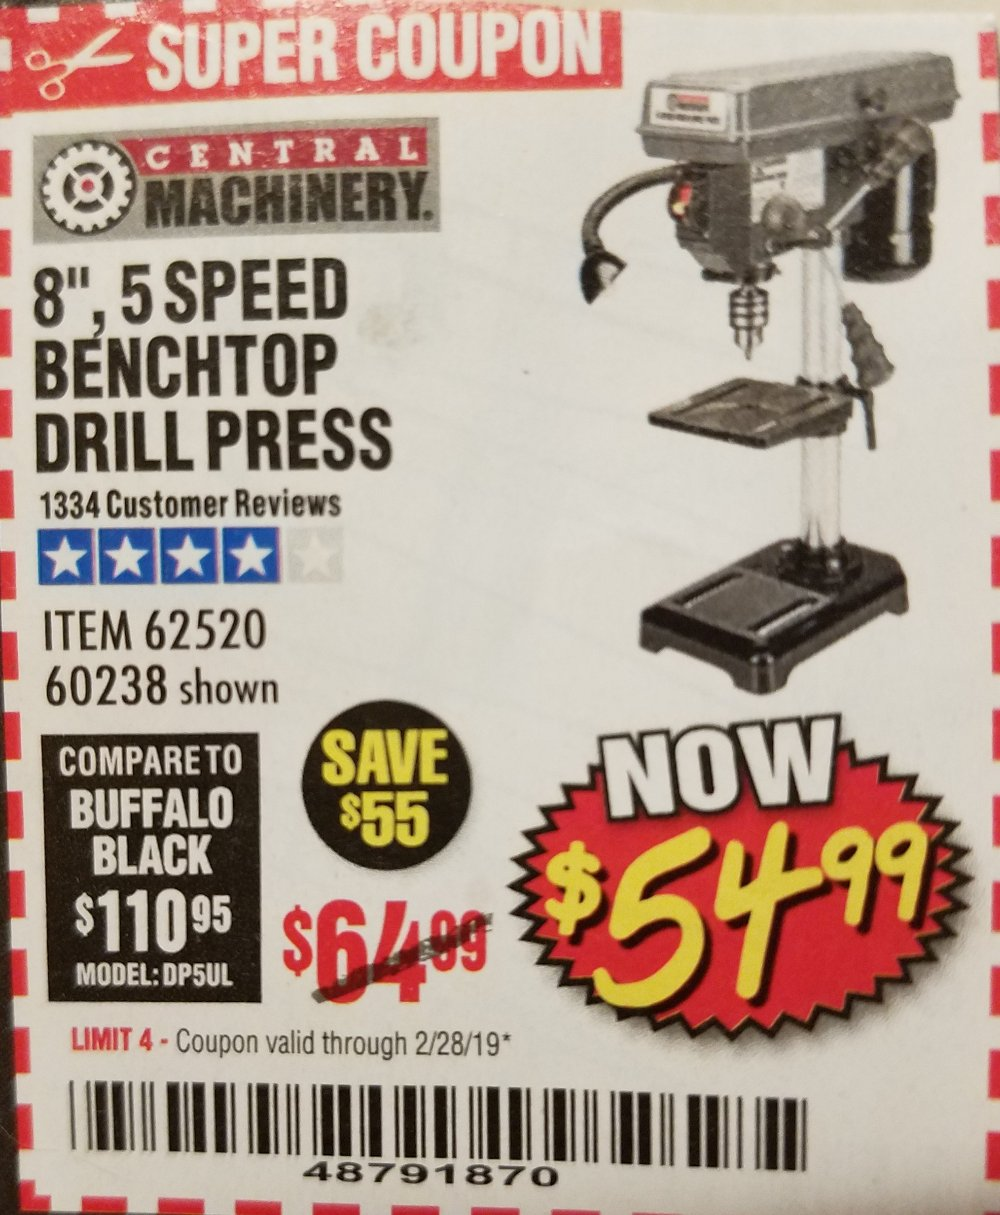 Harbor Freight Coupon, HF Coupons - 8